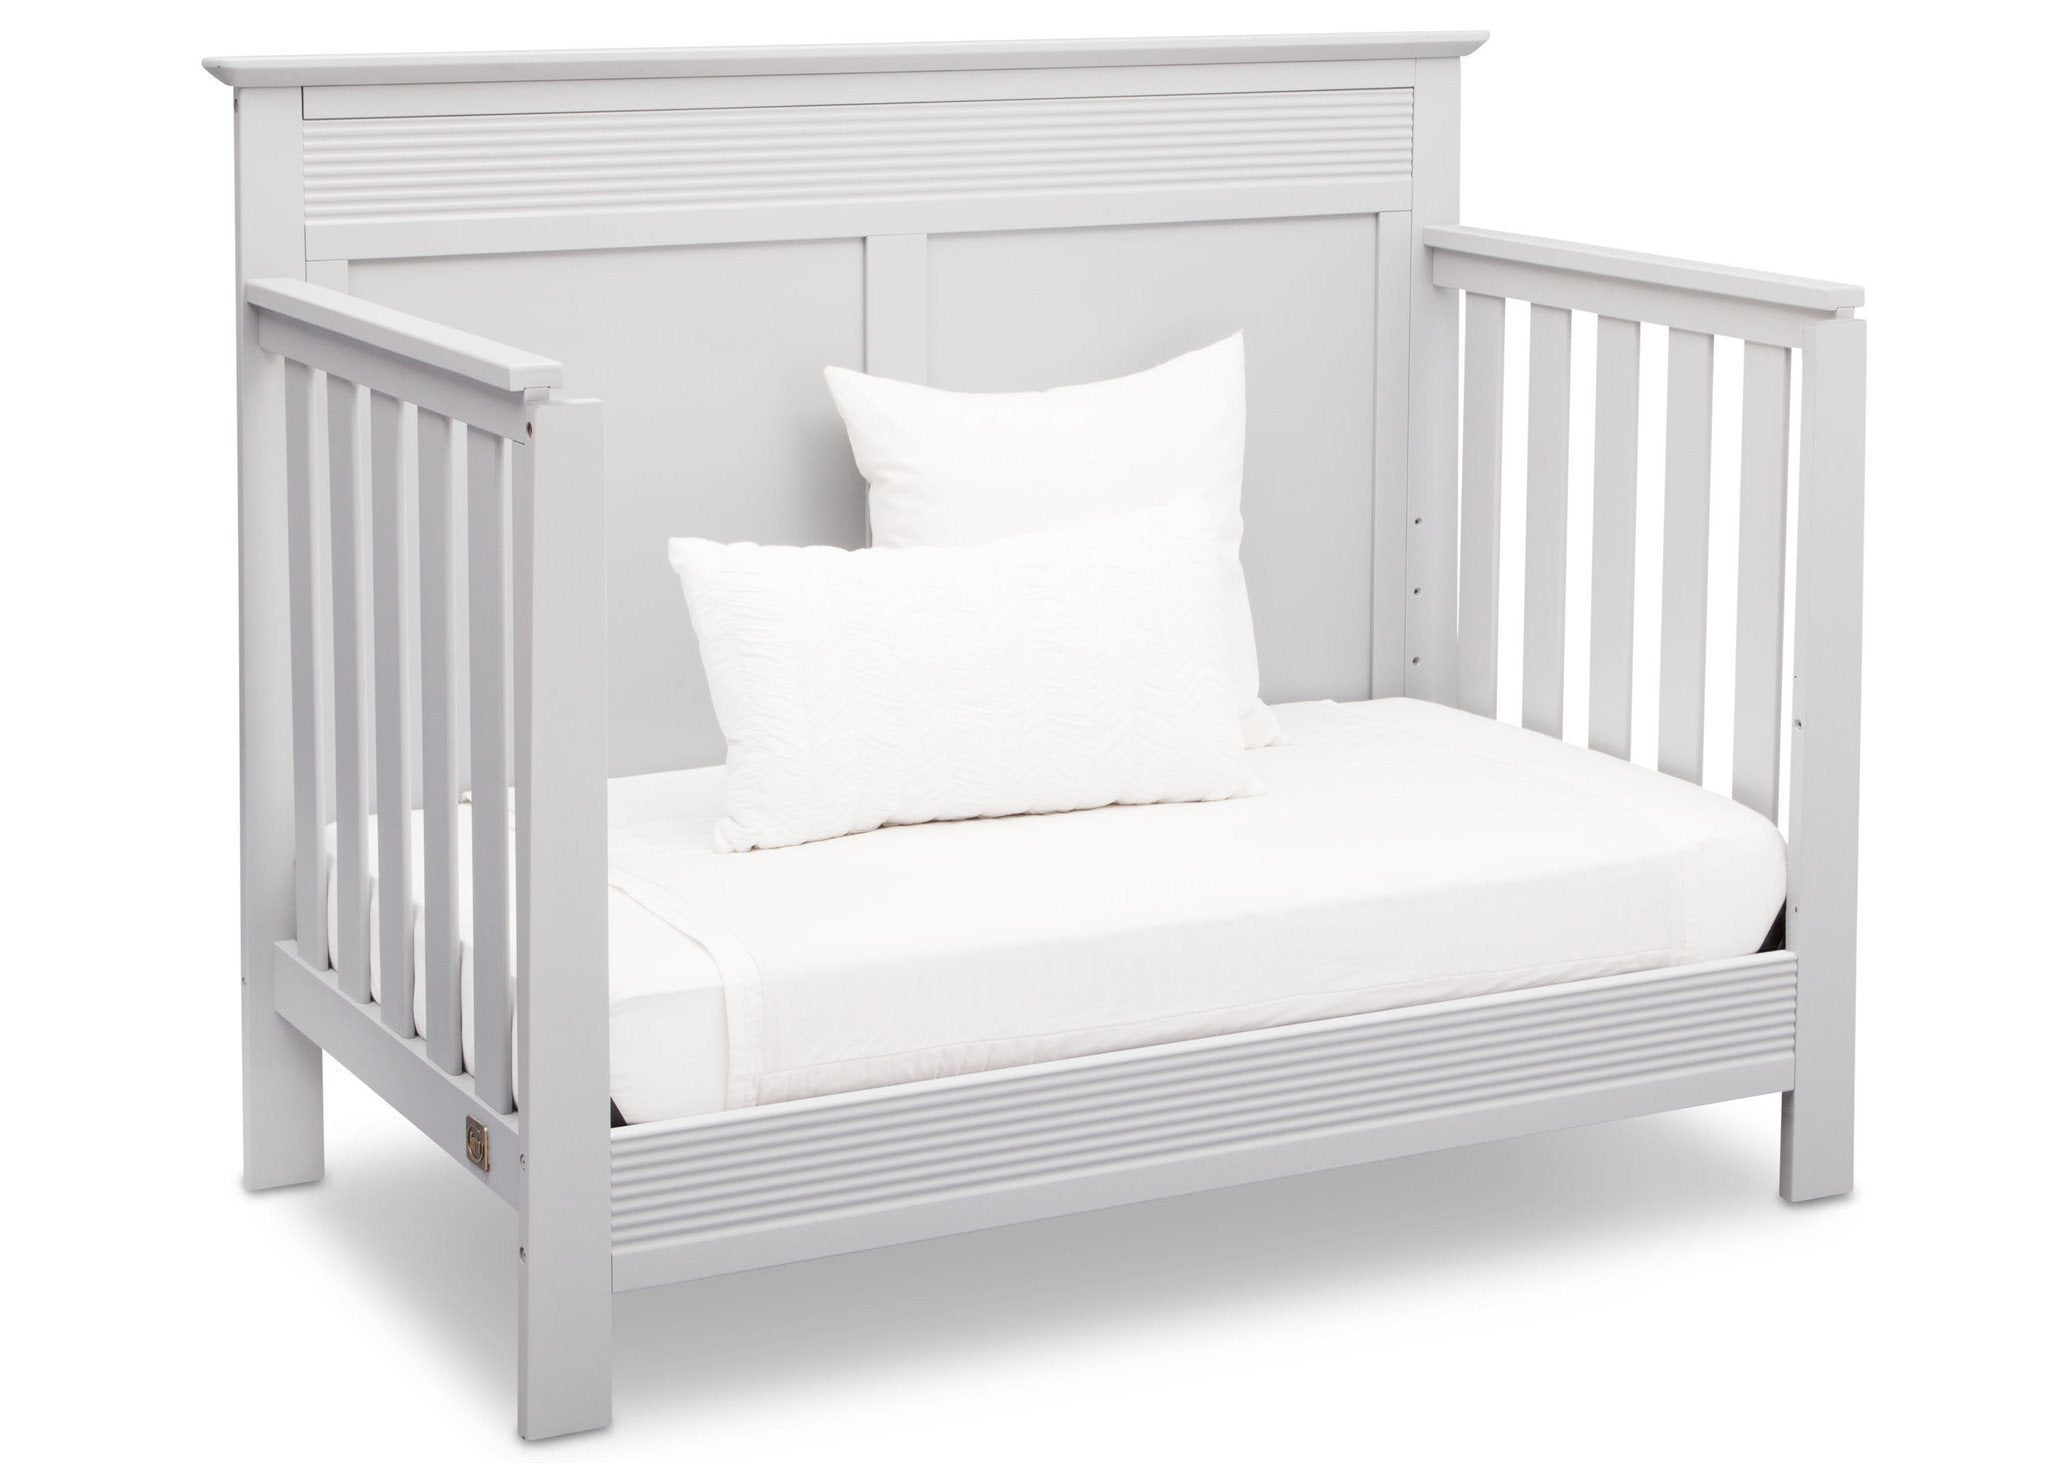 Serta Bianca White (130) Fall River 4-in-1 Convertible Crib, Right Daybed View b4b